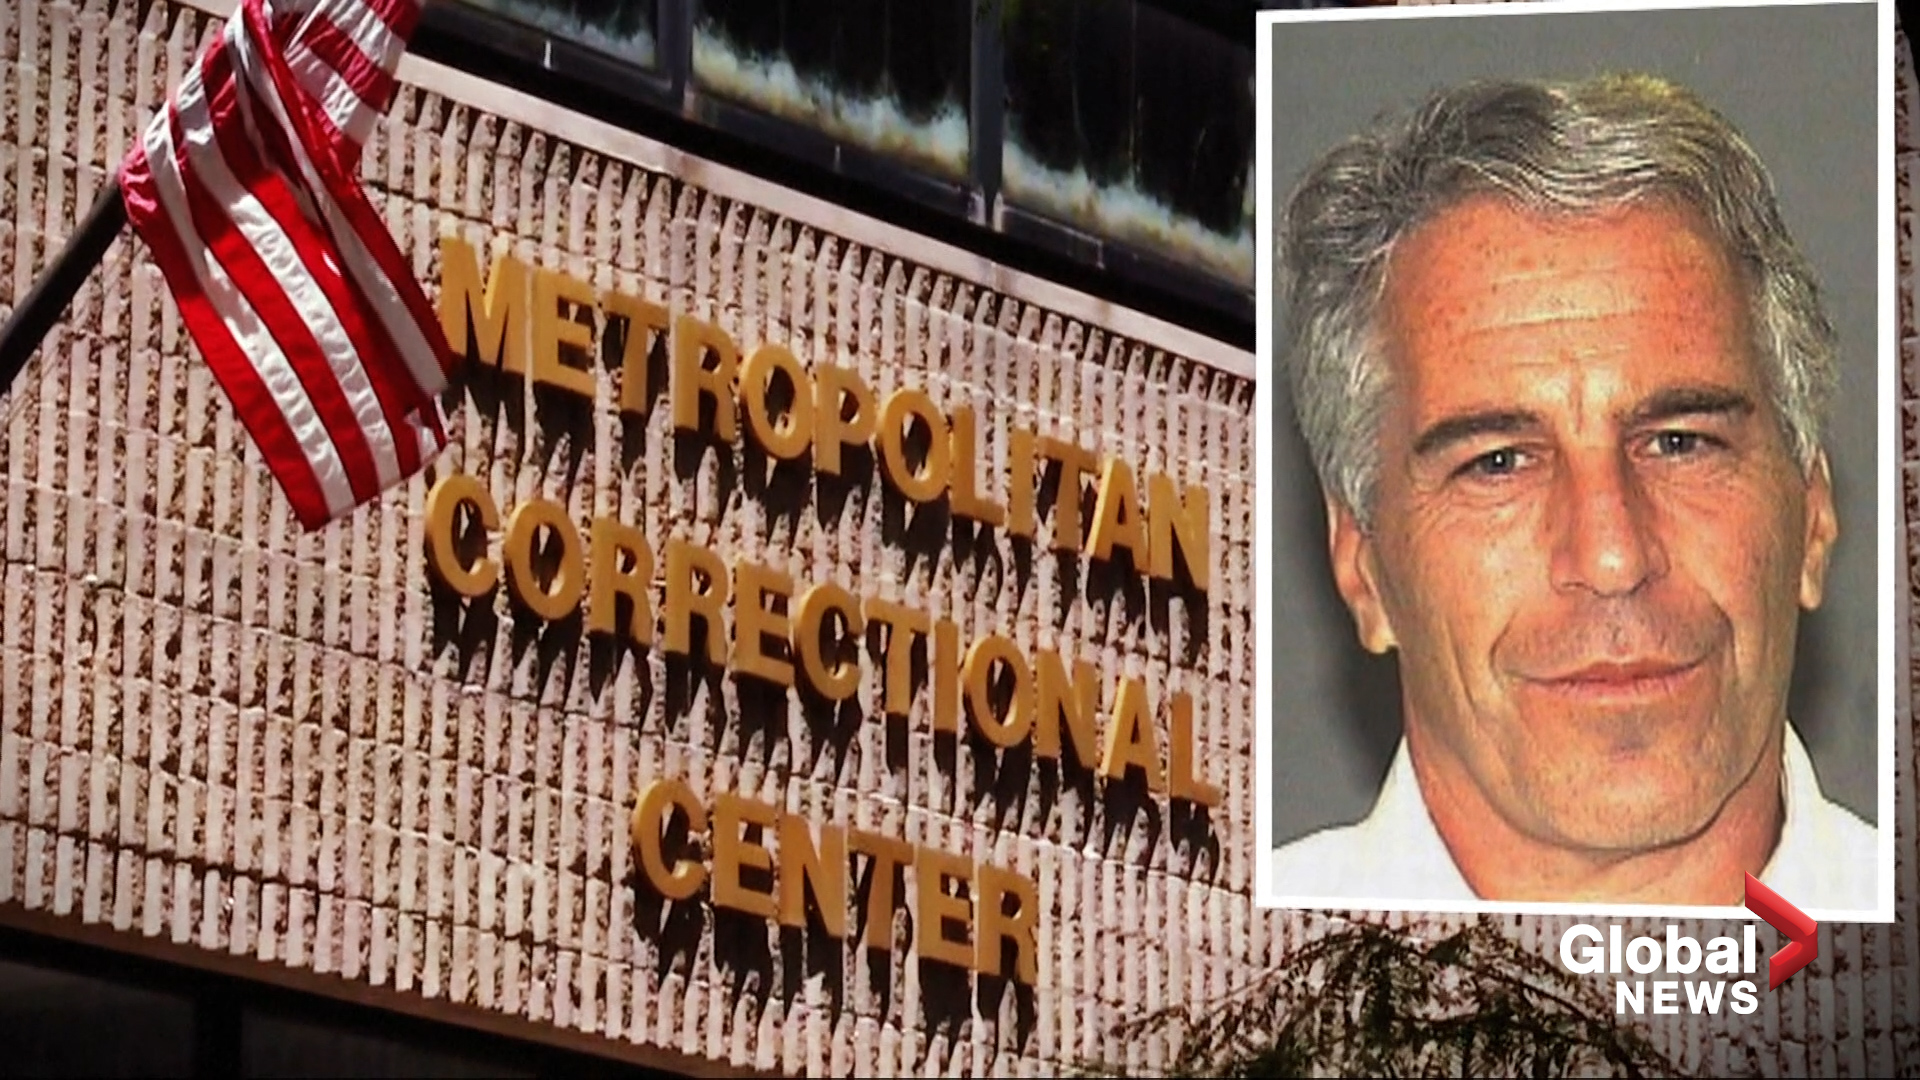 Correctional officers subpoenaed in Epstein probe, source says